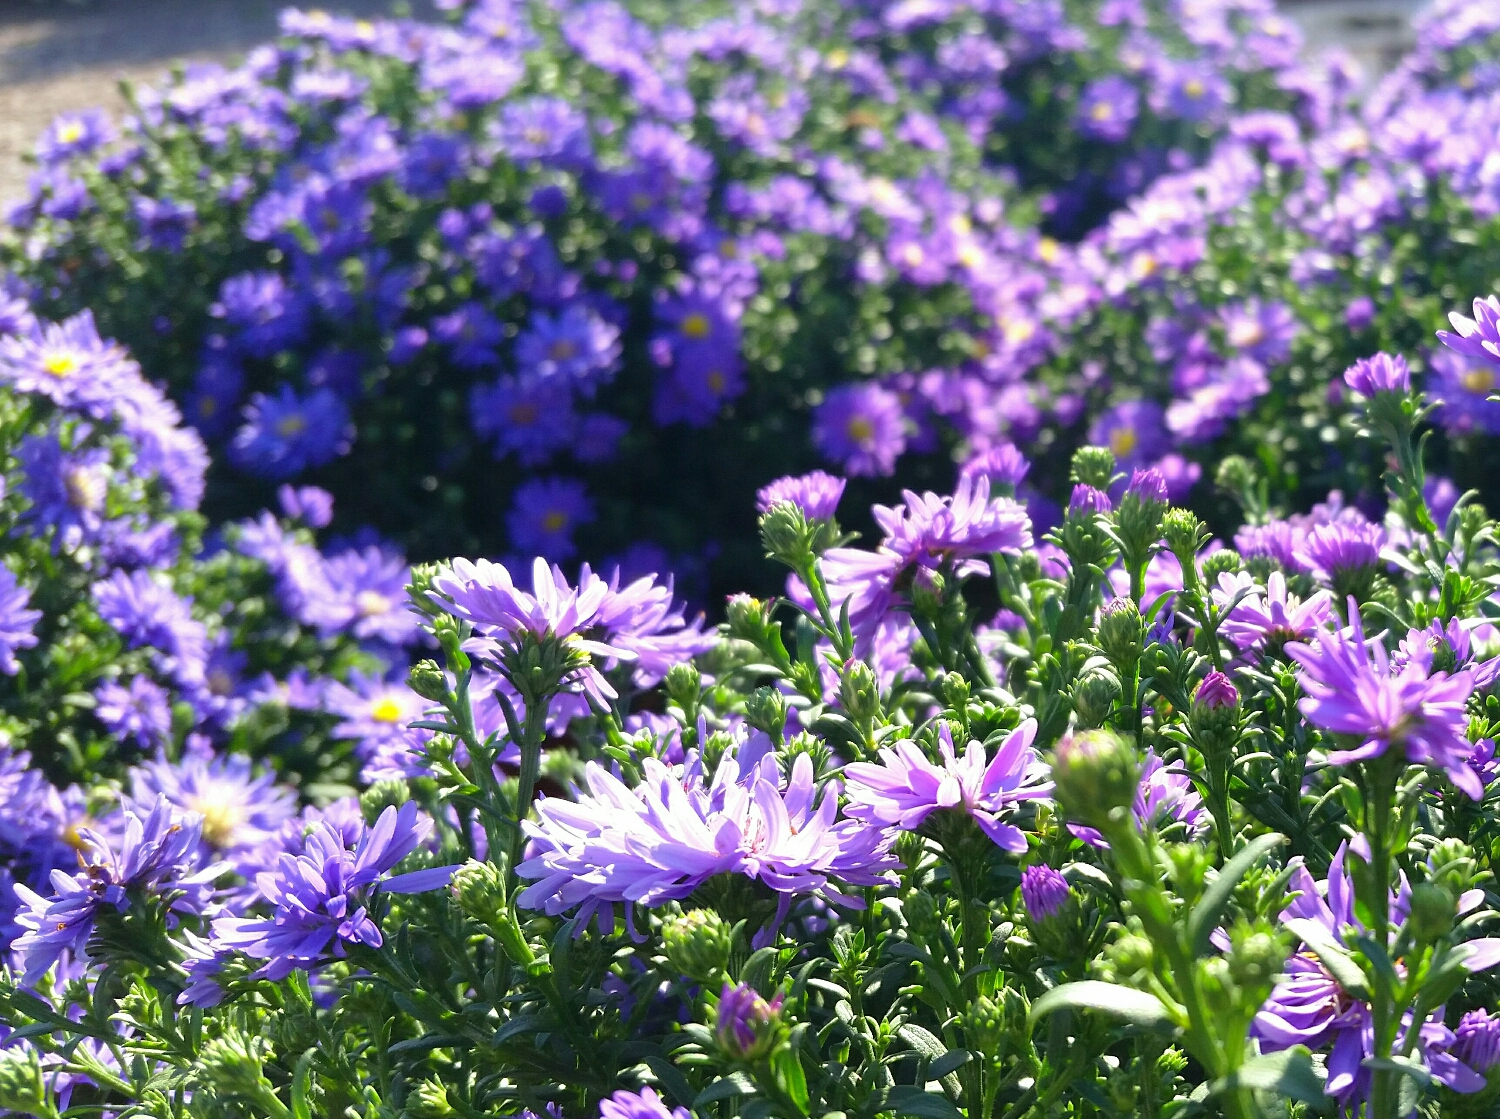 Asters give the perfect pop of purple color to contrast with the warm tones of pumpkins and mums.